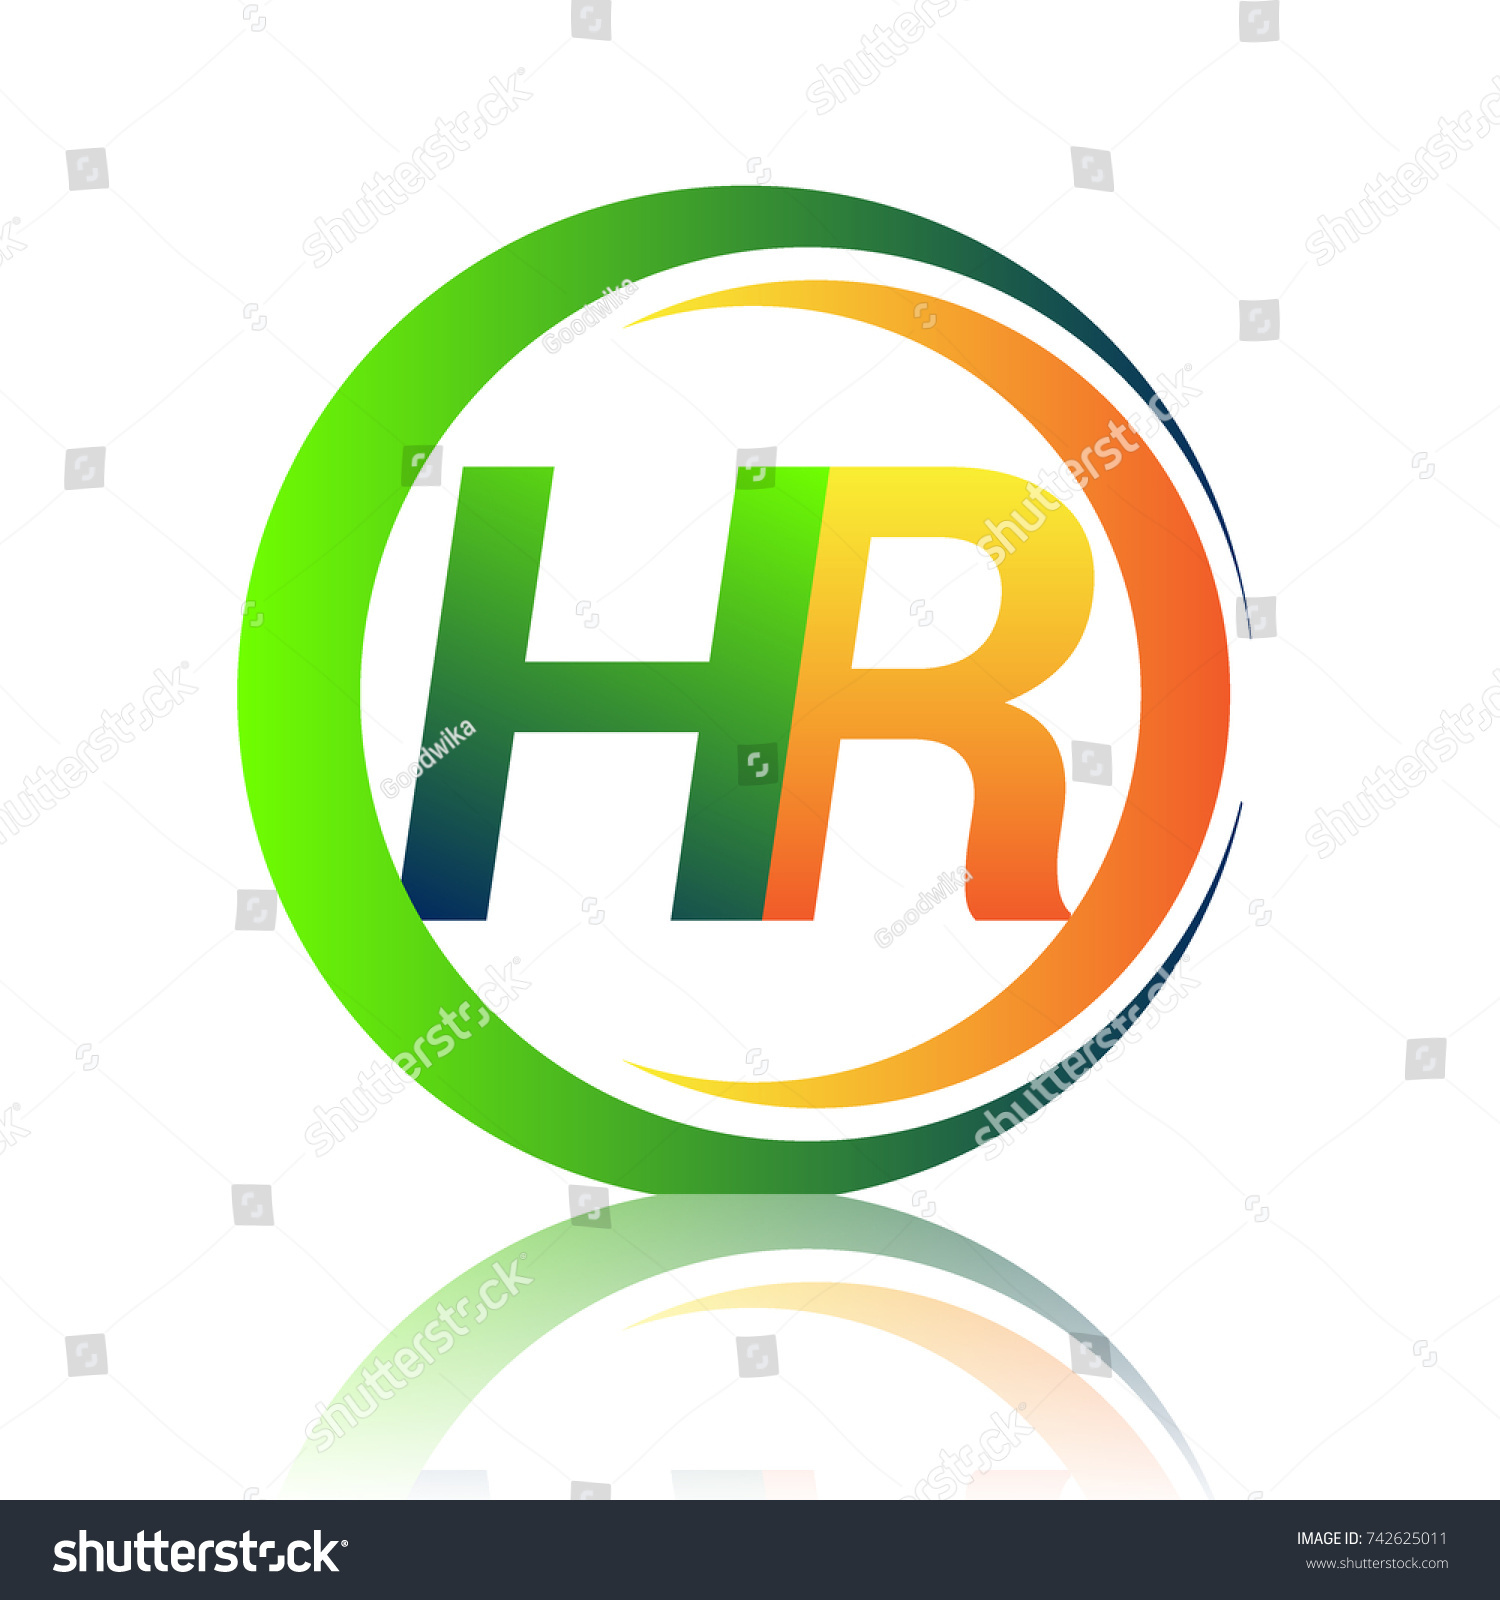 Initial Letter Logo Hr Company Name Green And Orange Color On Circle And  Swoosh Design.